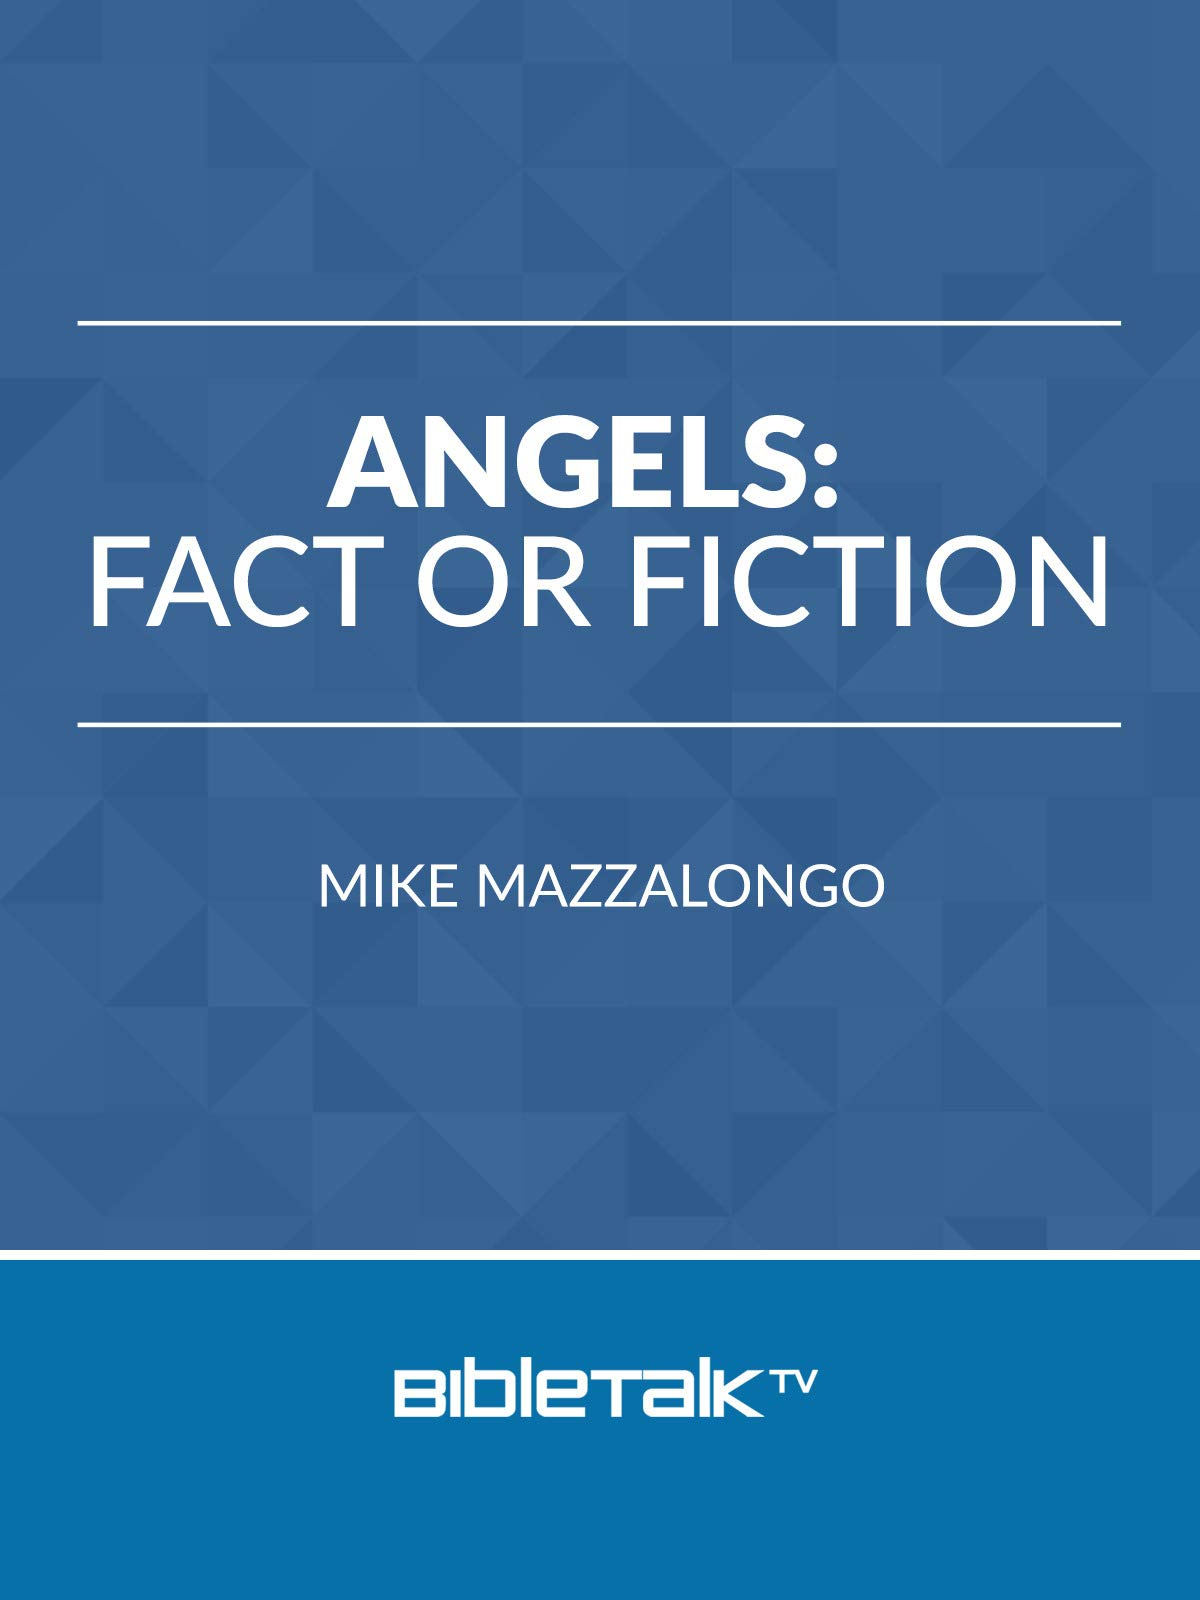 Angels: Fact or Fiction